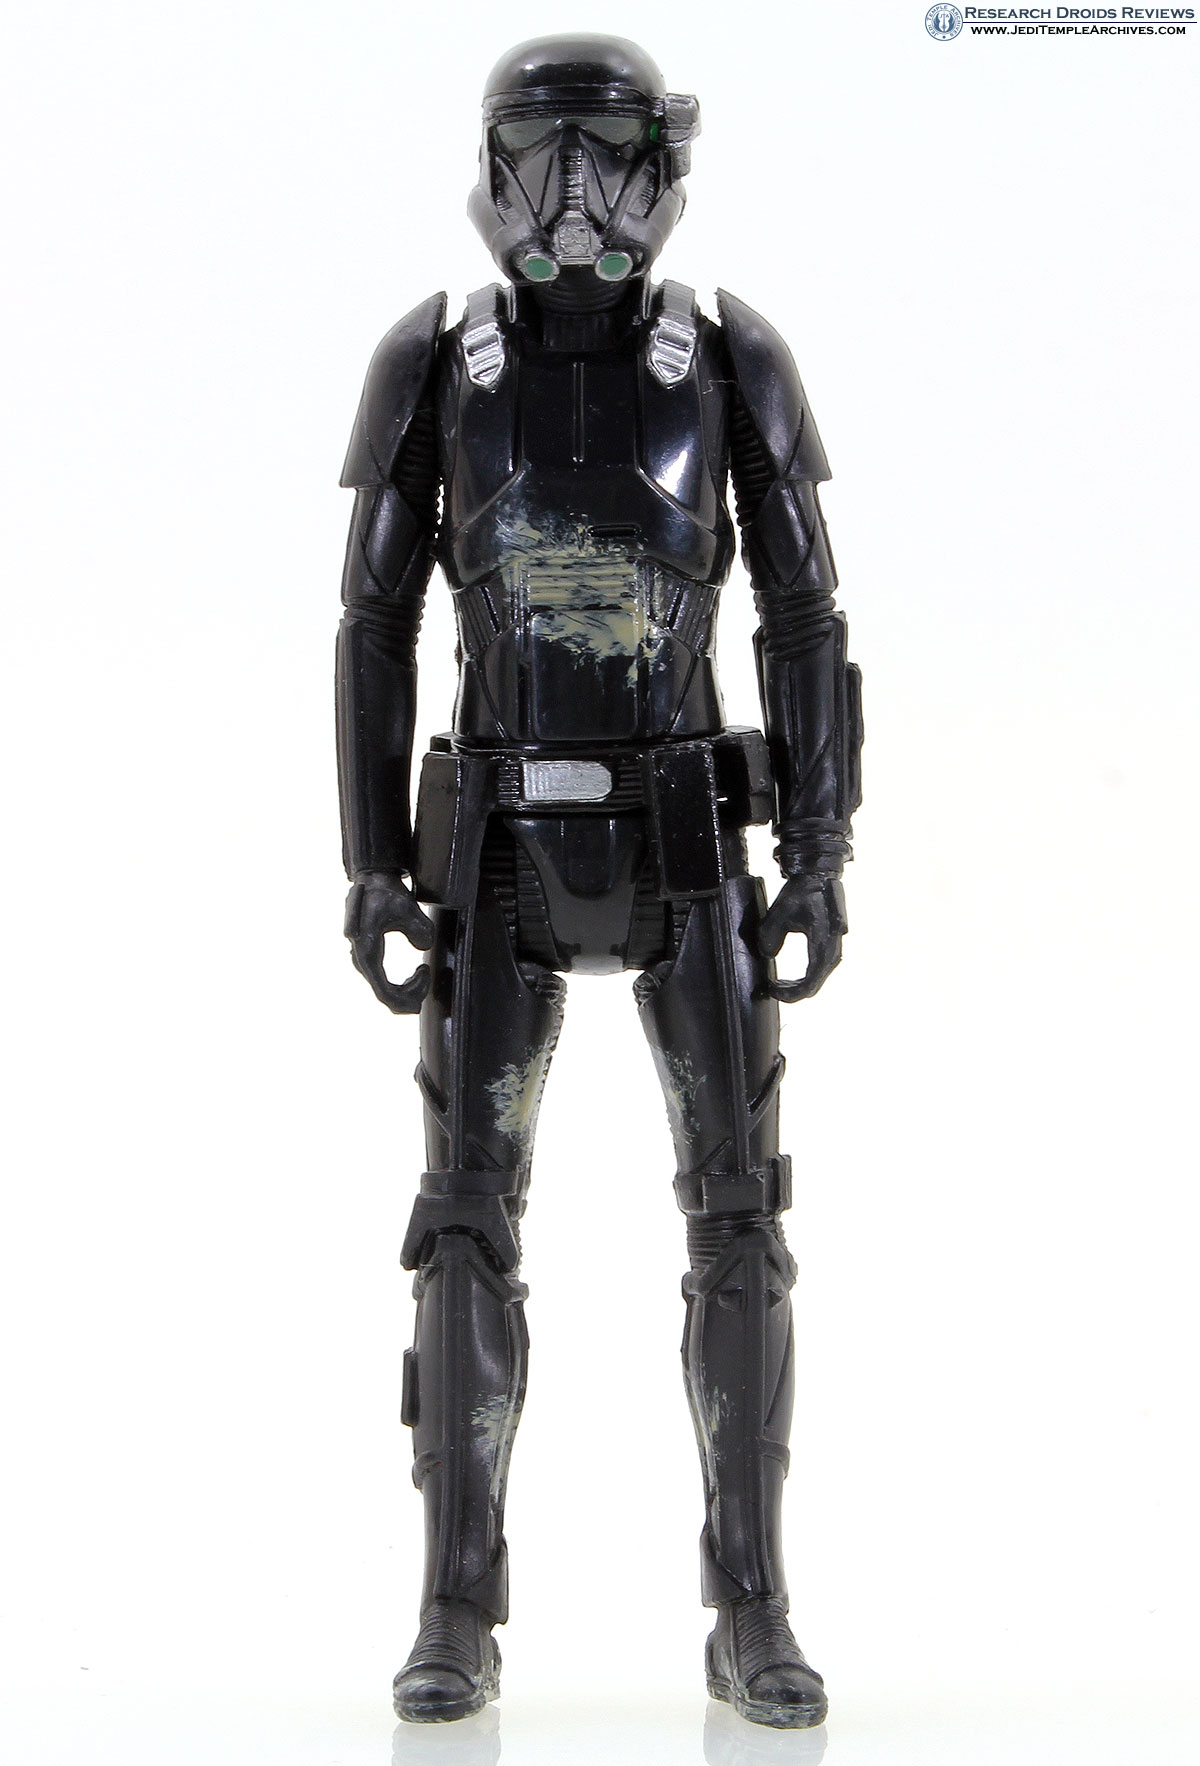 Imperial Death Trooper | Rogue One Four-Pack